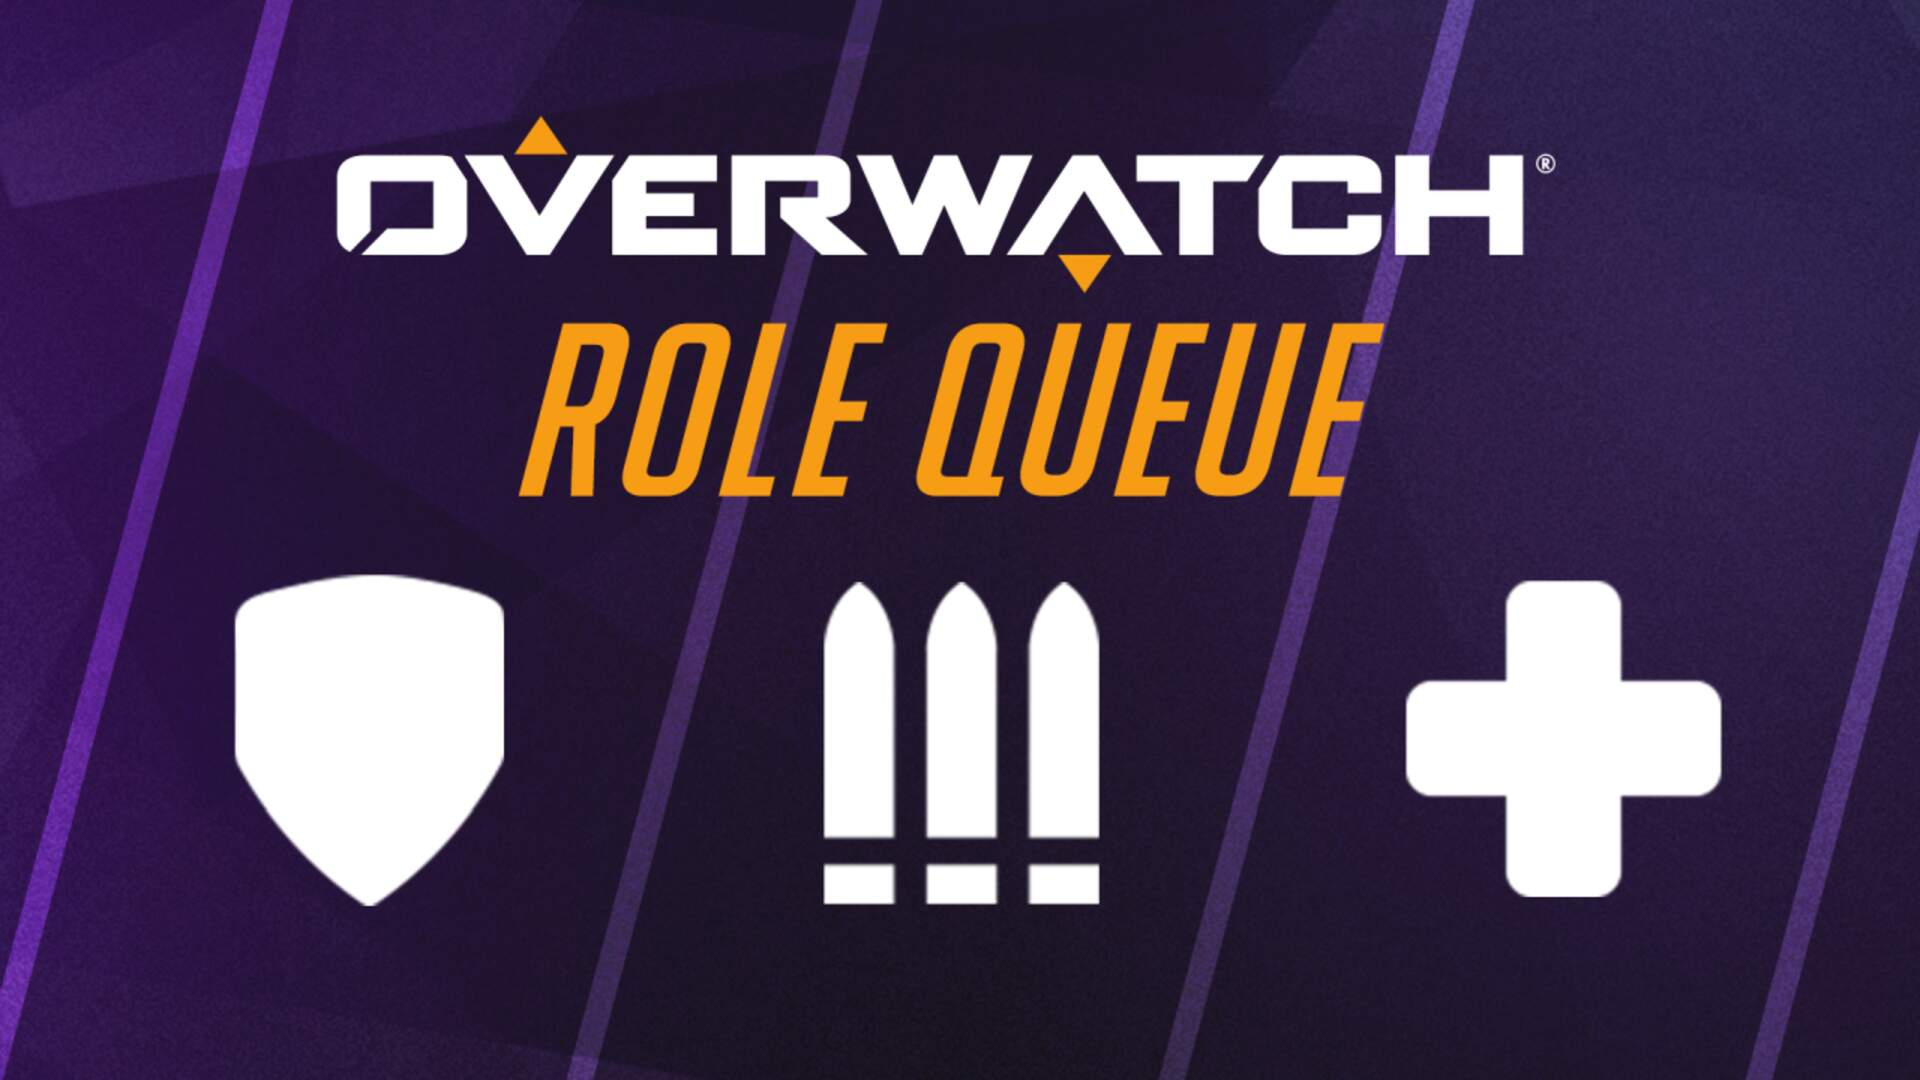 Overwatch Is Adding A Role Queue To Lock Down Team Balance